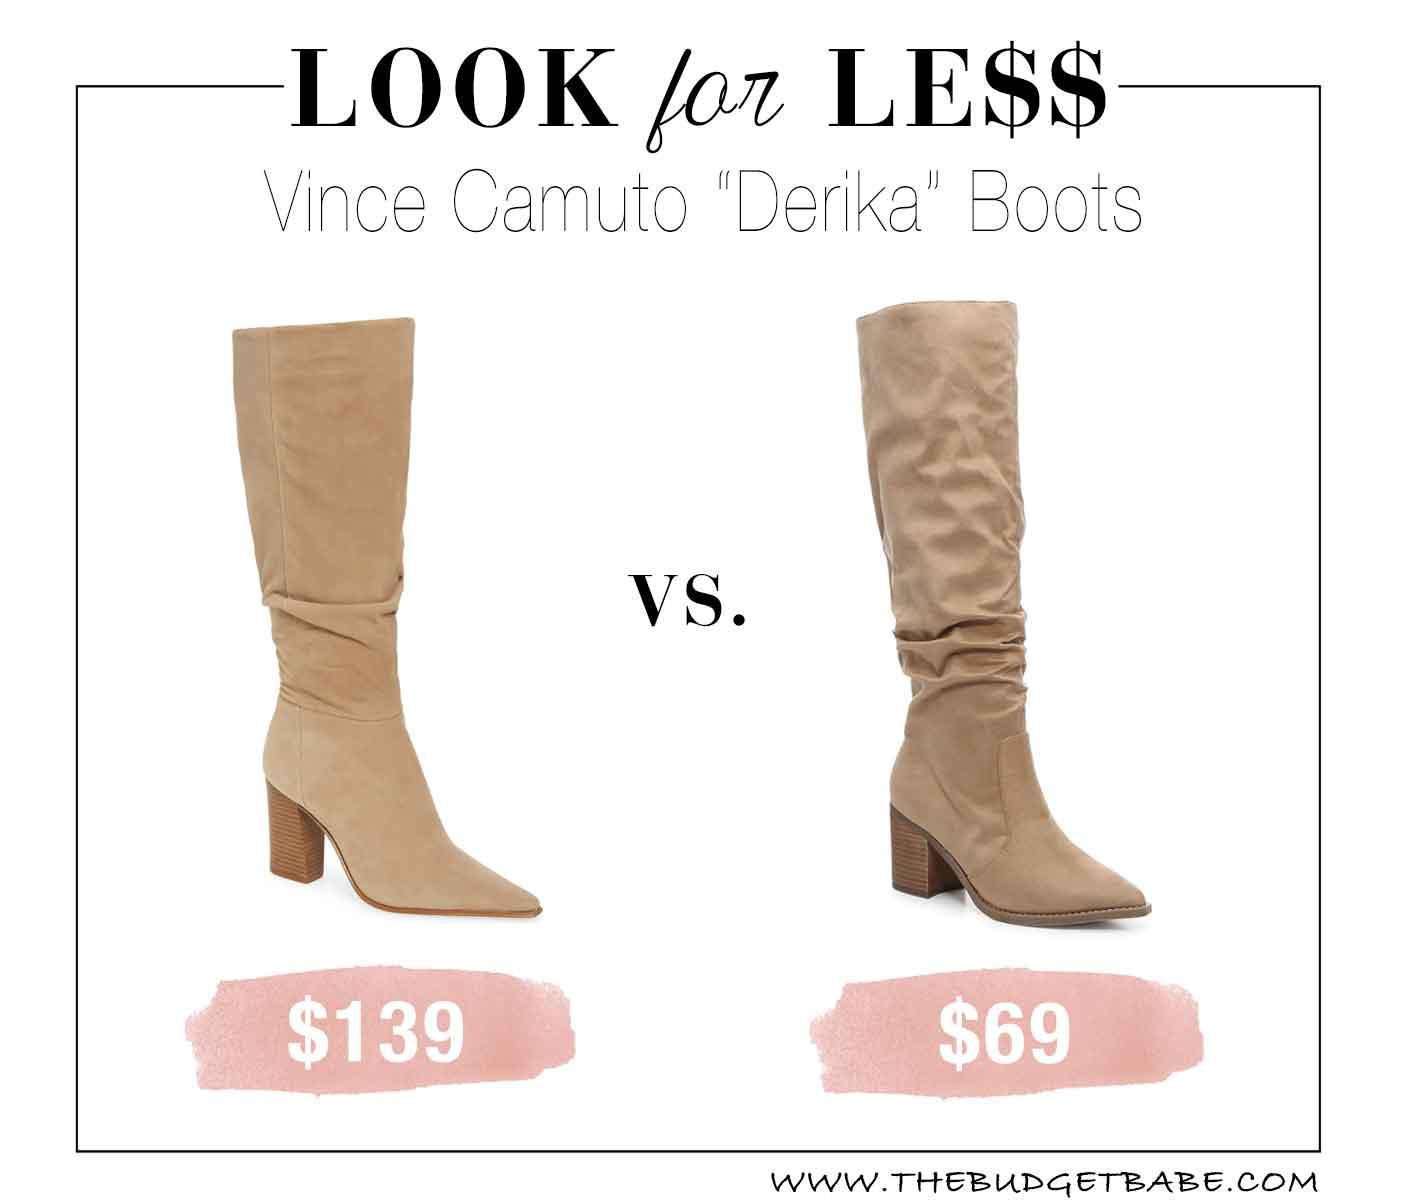 Wow this looks just like the Derika boots for half the price!